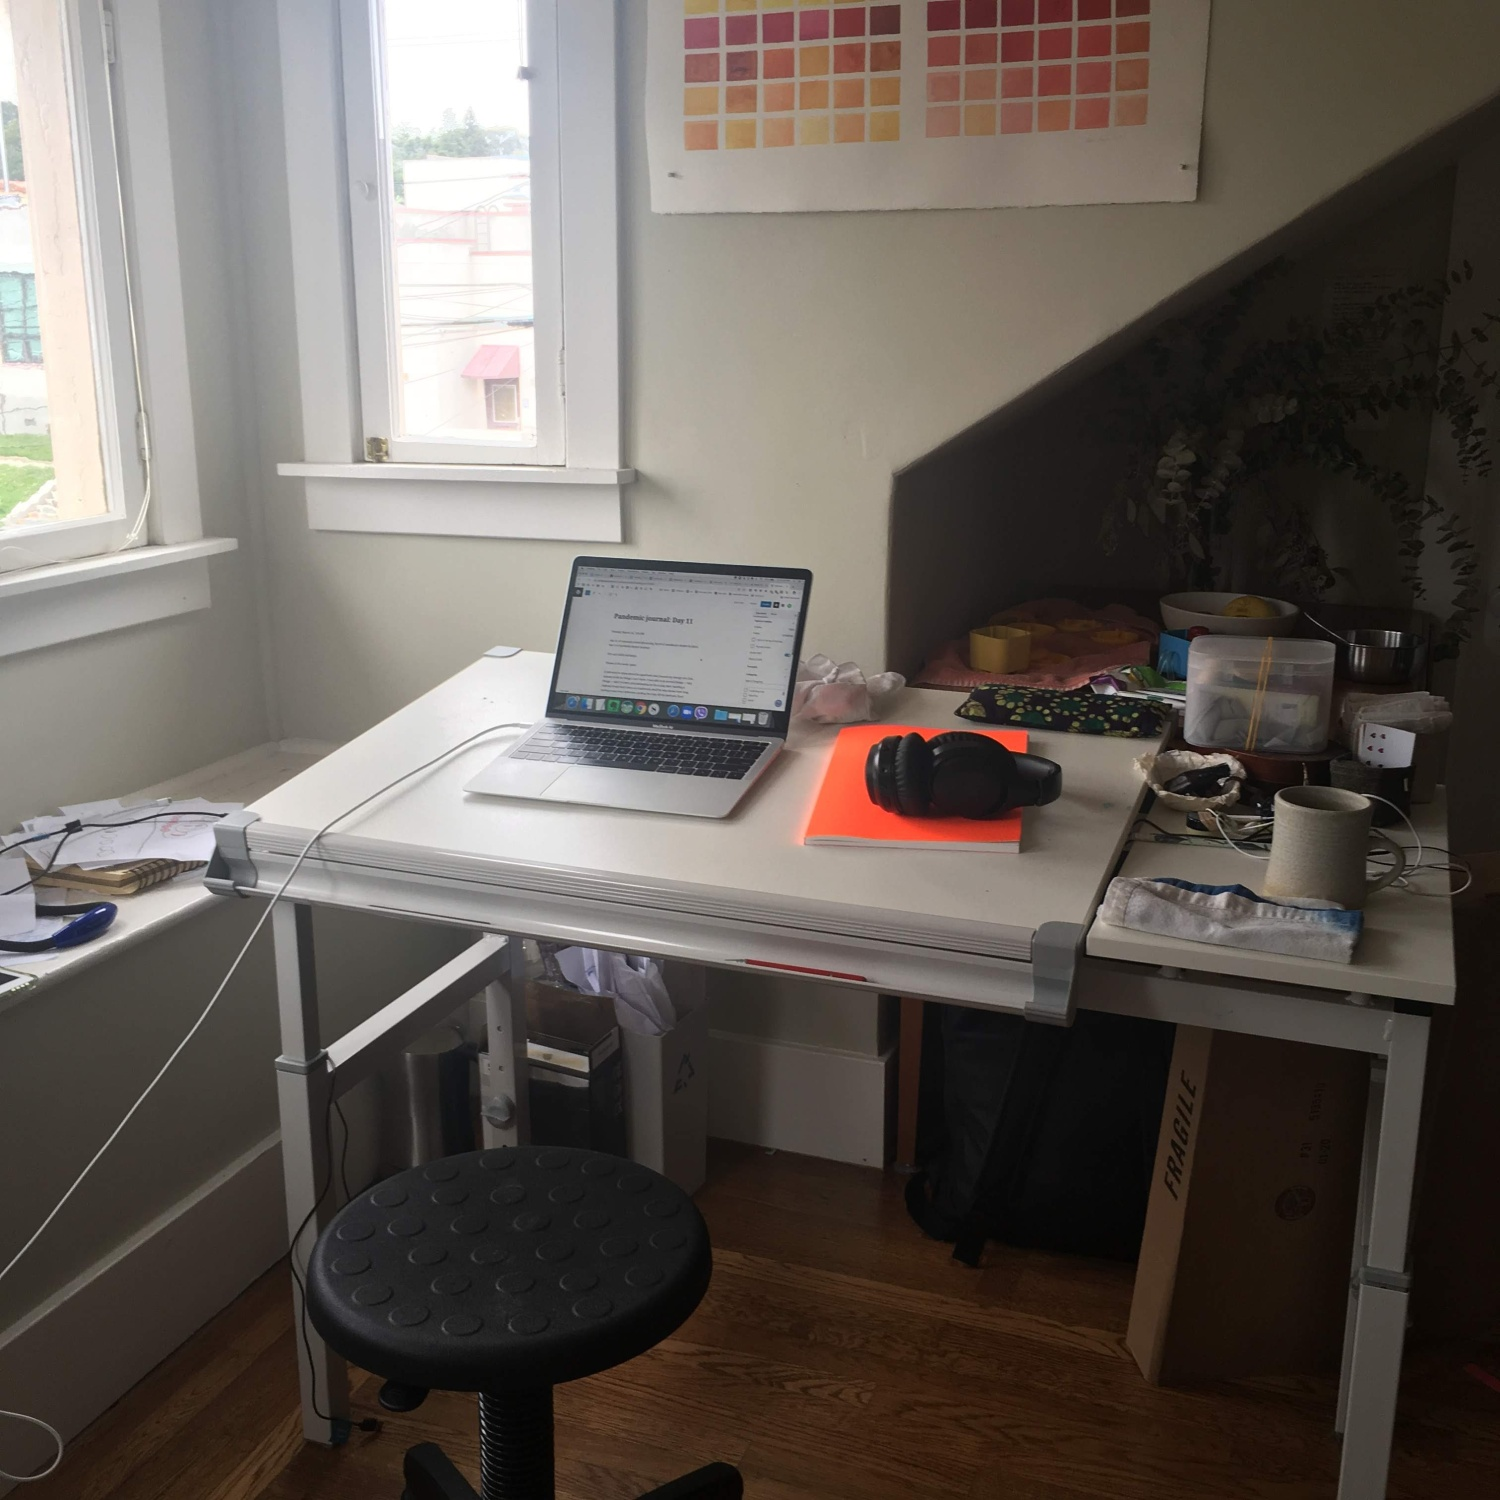 A cluttered drafting table next to a window